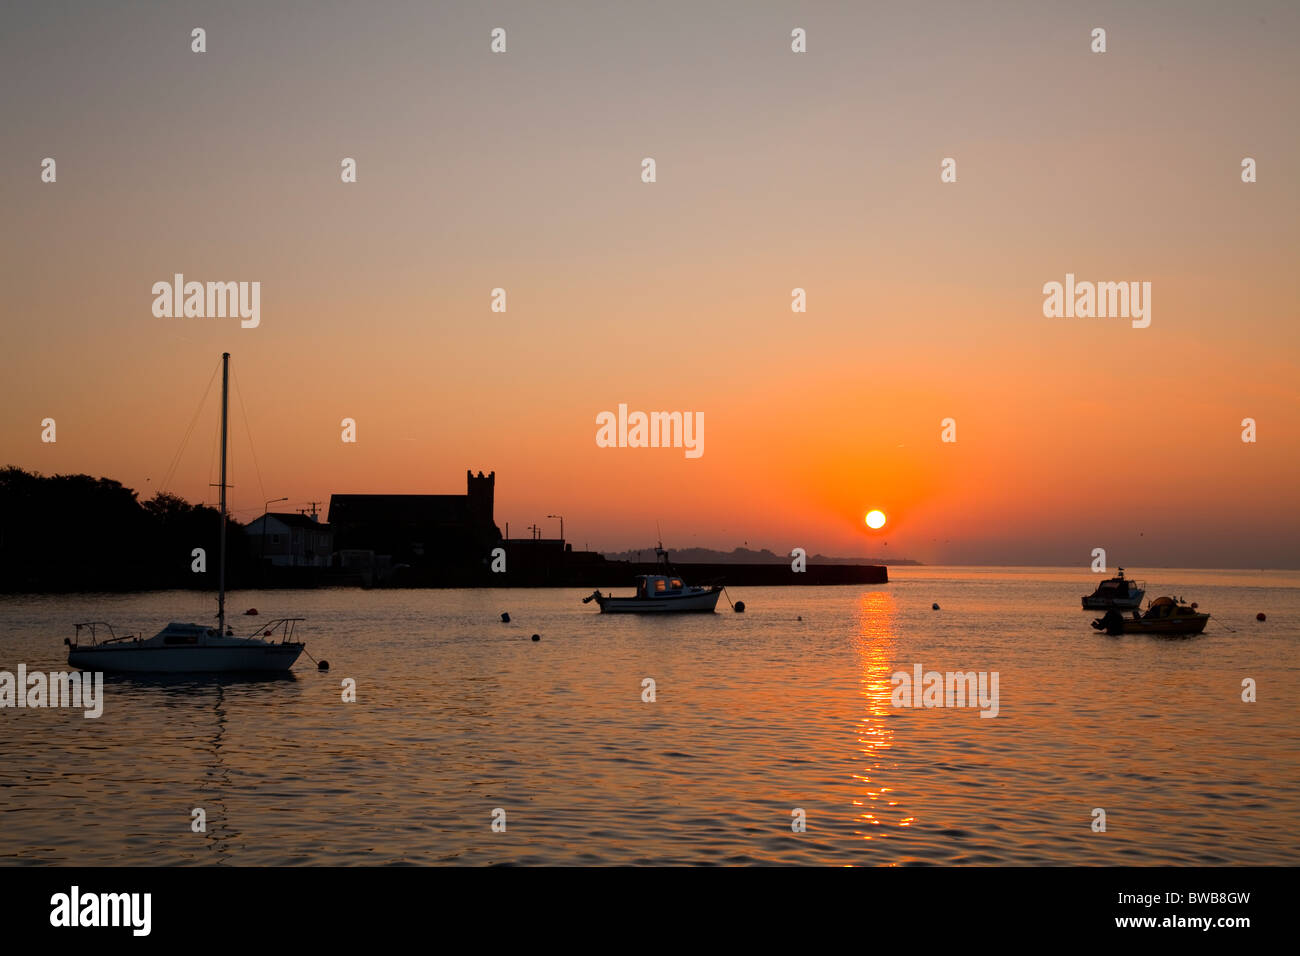 Sunrise over Abbeyside, Across Dungarvan Harbour, County Waterford, Ireland - Stock Image